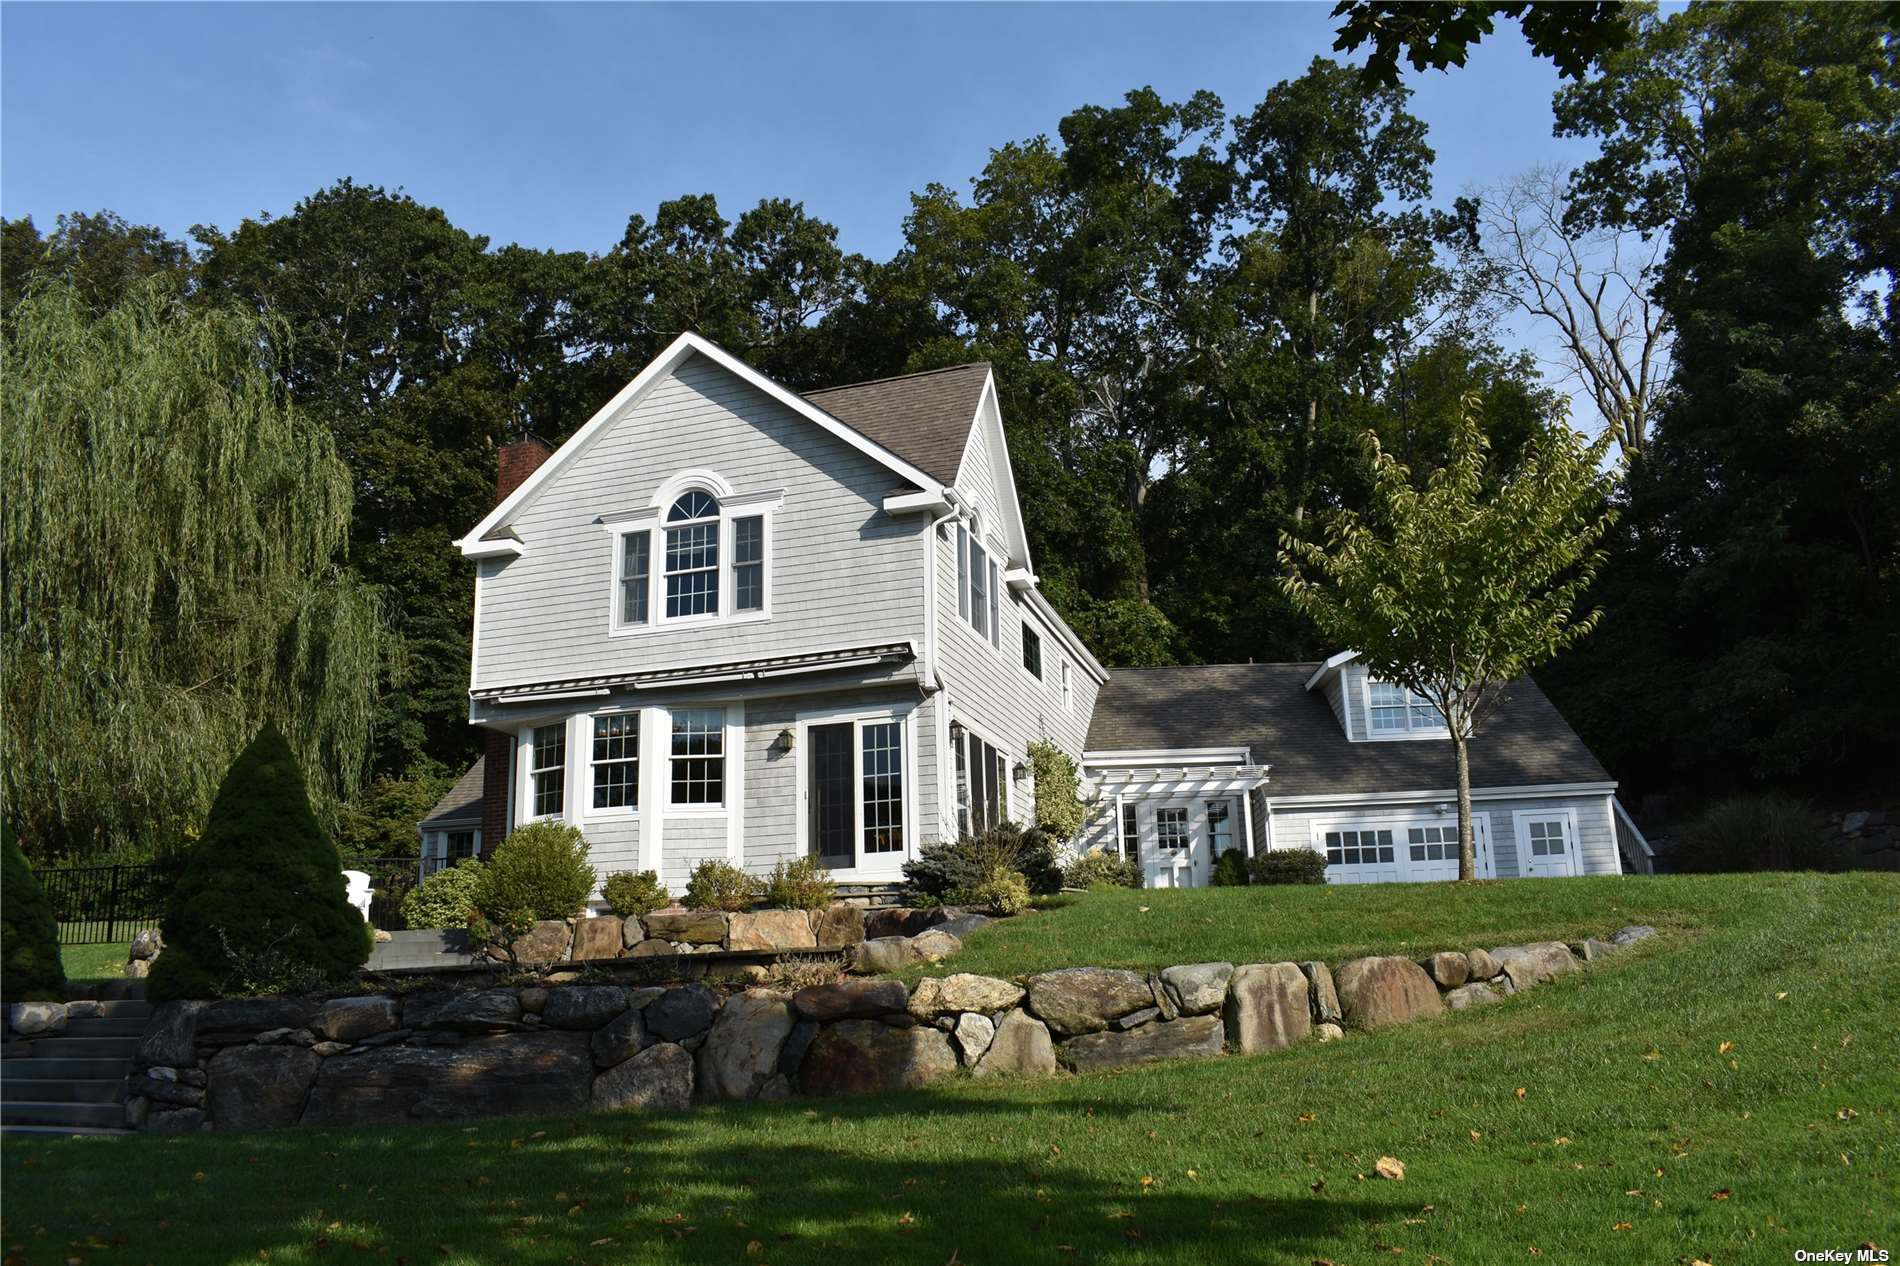 Sunsoaked and meticulously renovated turn-of-the-century jewel box overlooking the Stony Brook Harbor and Nissequogue Golf Club! Enter through your gates, down a 400 foot stone driveway to this hidden gem! LOWEST taxes for Nissequogue! Privacy galore! No expense spared in the complete renovation both inside and out - new heated gunite pool, new barn, bluestone patios and stone walls, new Brazilian cherry wood floors and staircases, new kitchen and baths, handcrafted woodwork, new open loft office/4th bed and bath with separate staircase and outside entrance, and water views from almost every room! Private Stillwaters community beach and mooring rights at foot of your driveway! Hamptons-like living just 50 miles east of Manhattan! Beach, boating, hiking, golf and tennis at your doorstep! Smithtown schools. Annual Stillwaters Community Dues $300. Broker owner.